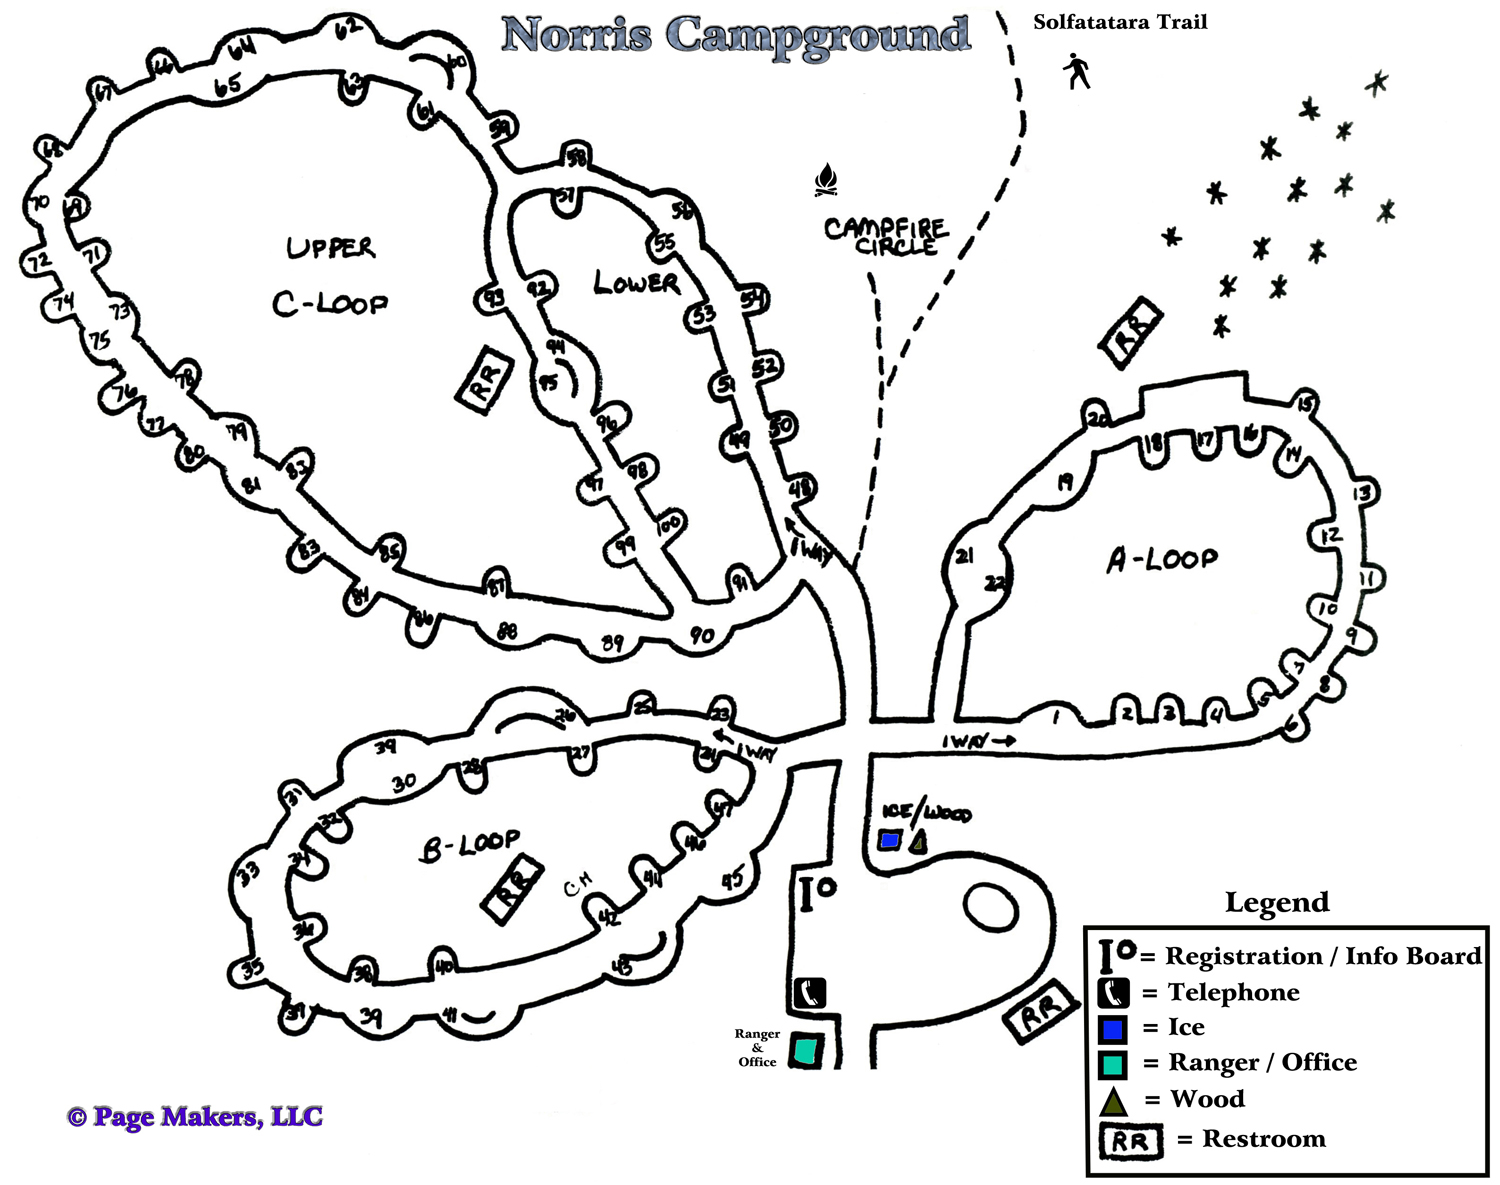 Norris Campground Information, Map, Pictures and Video - Yellowstone on yellowstone deer, yellowstone fishing, yellowstone road, yellowstone in september, yellowstone trees, yellowstone forest, yellowstone park history, yellowstone rocks, yellowstone campground rates, yellowstone highway, yellowstone springs, yellowstone bridge bay campground, yellowstone hiking, yellowstone grand canyon, yellowstone trout, yellowstone lewis lake campground, yellowstone elevation maps, yellowstone destruction zone, yellowstone water, yellowstone in october,